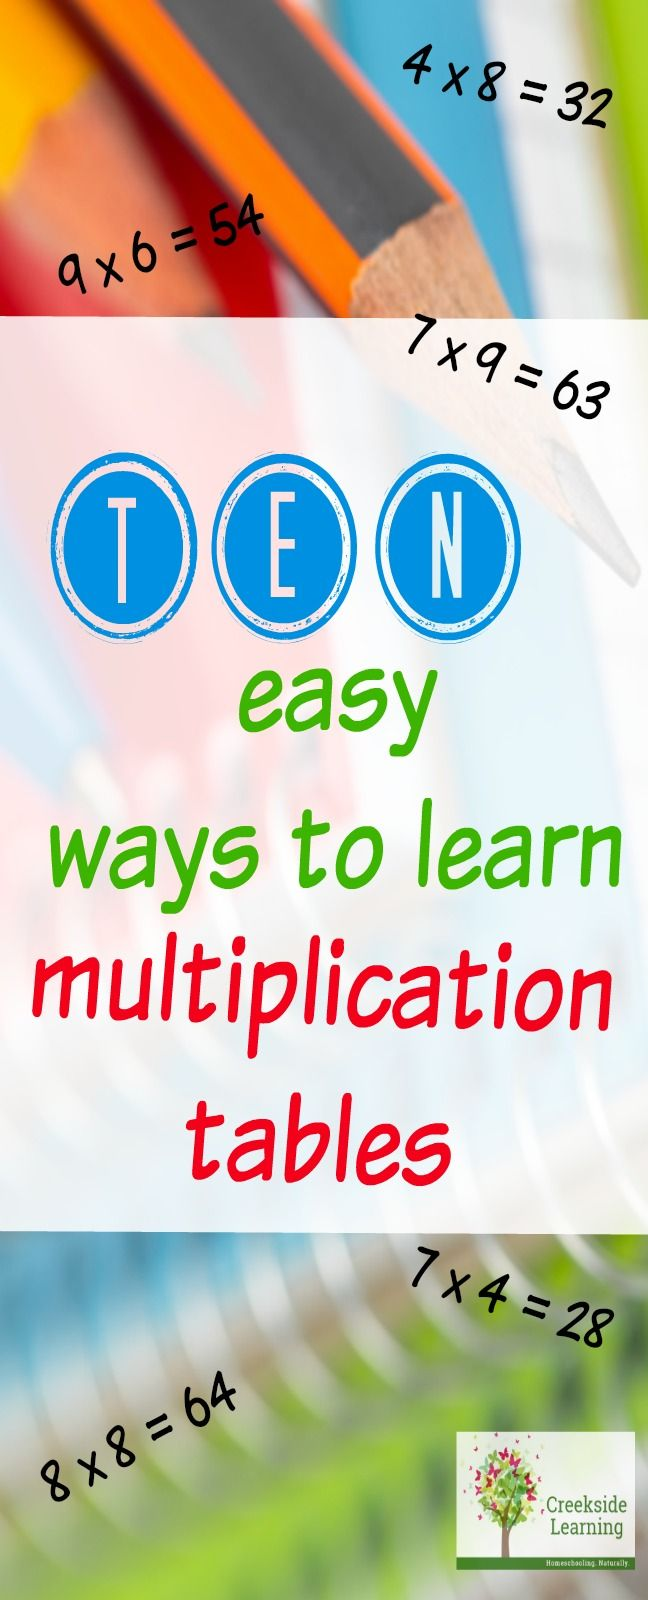 Best 25 multiplication tricks ideas on pinterest 9 times table best 25 multiplication tricks ideas on pinterest 9 times table trick teaching multiplication facts and math hacks gamestrikefo Image collections